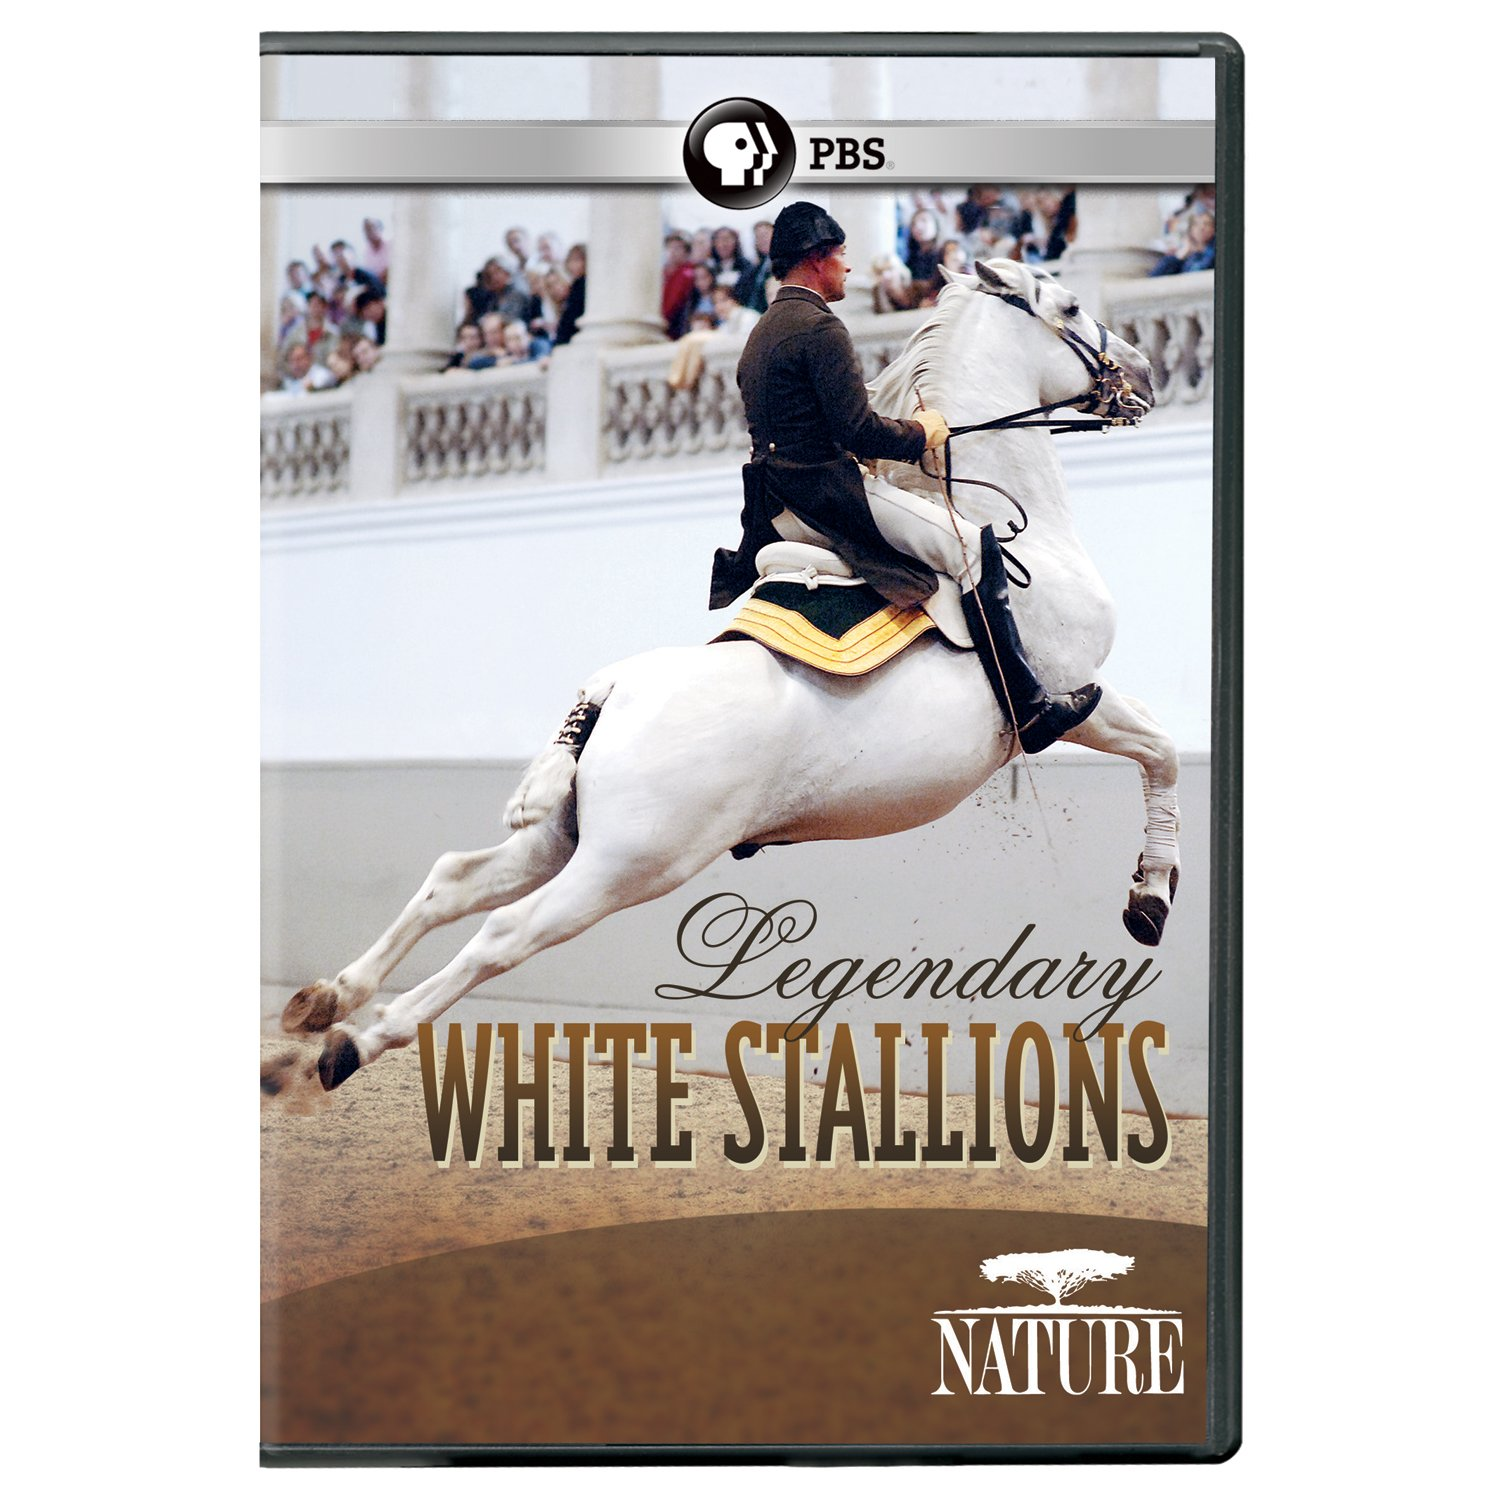 Nature: Legendary White Stallions